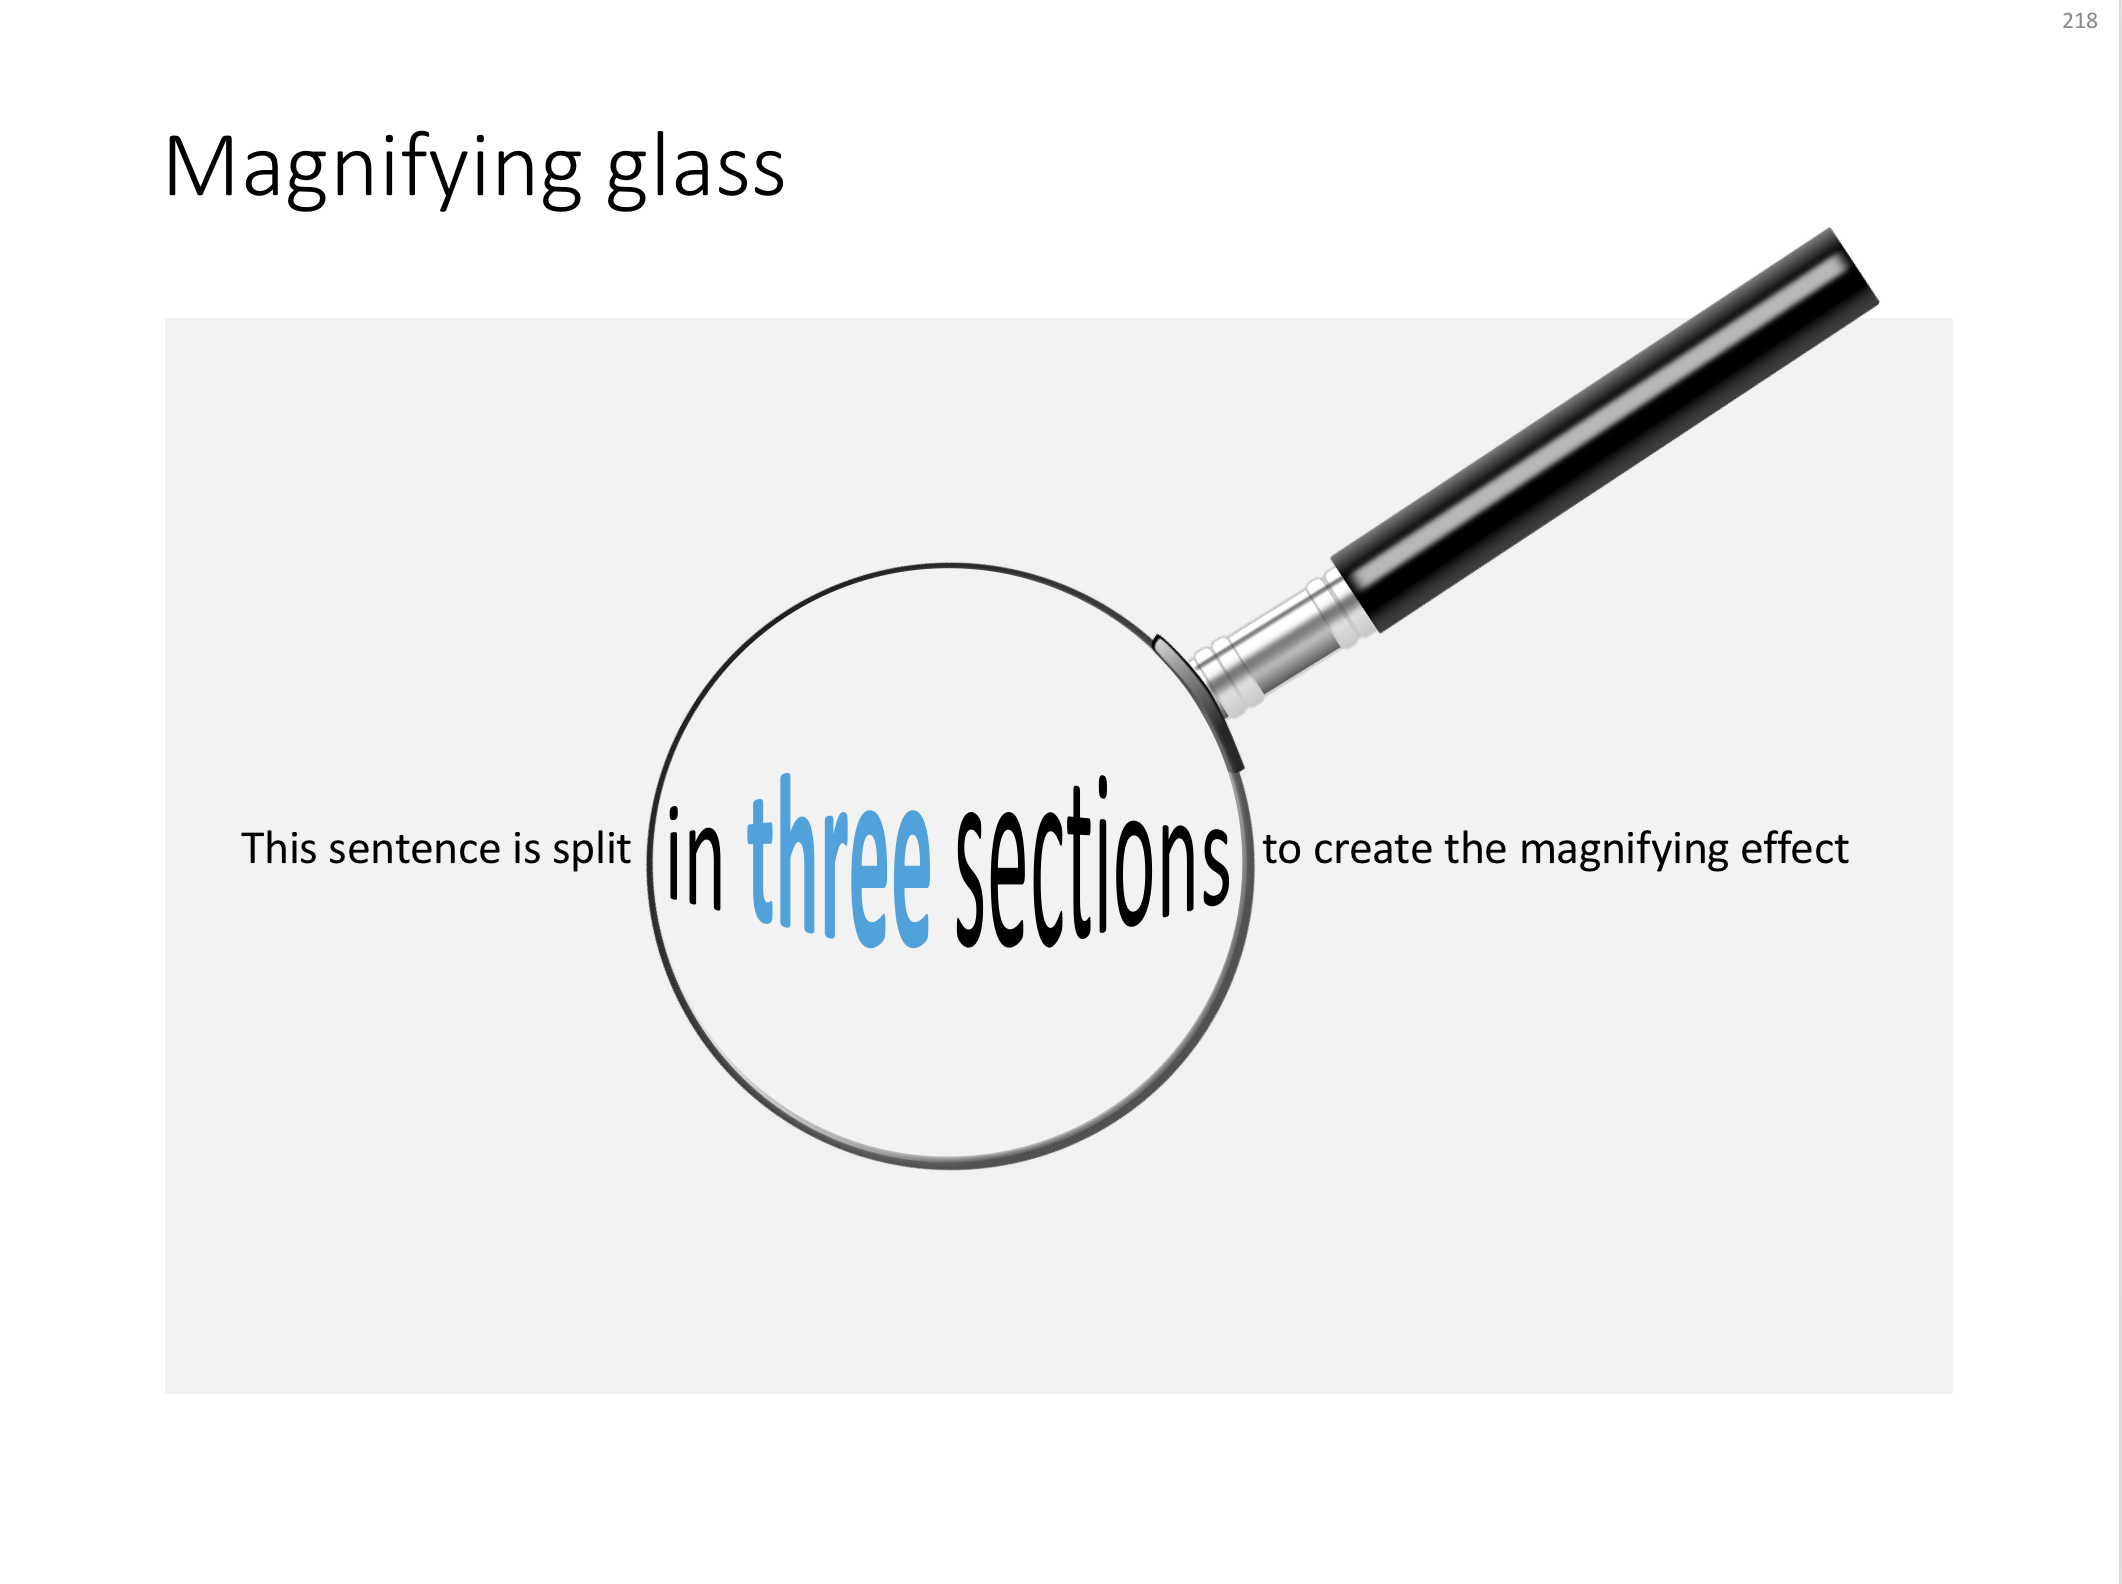 A magnifying glass in PowerPoint